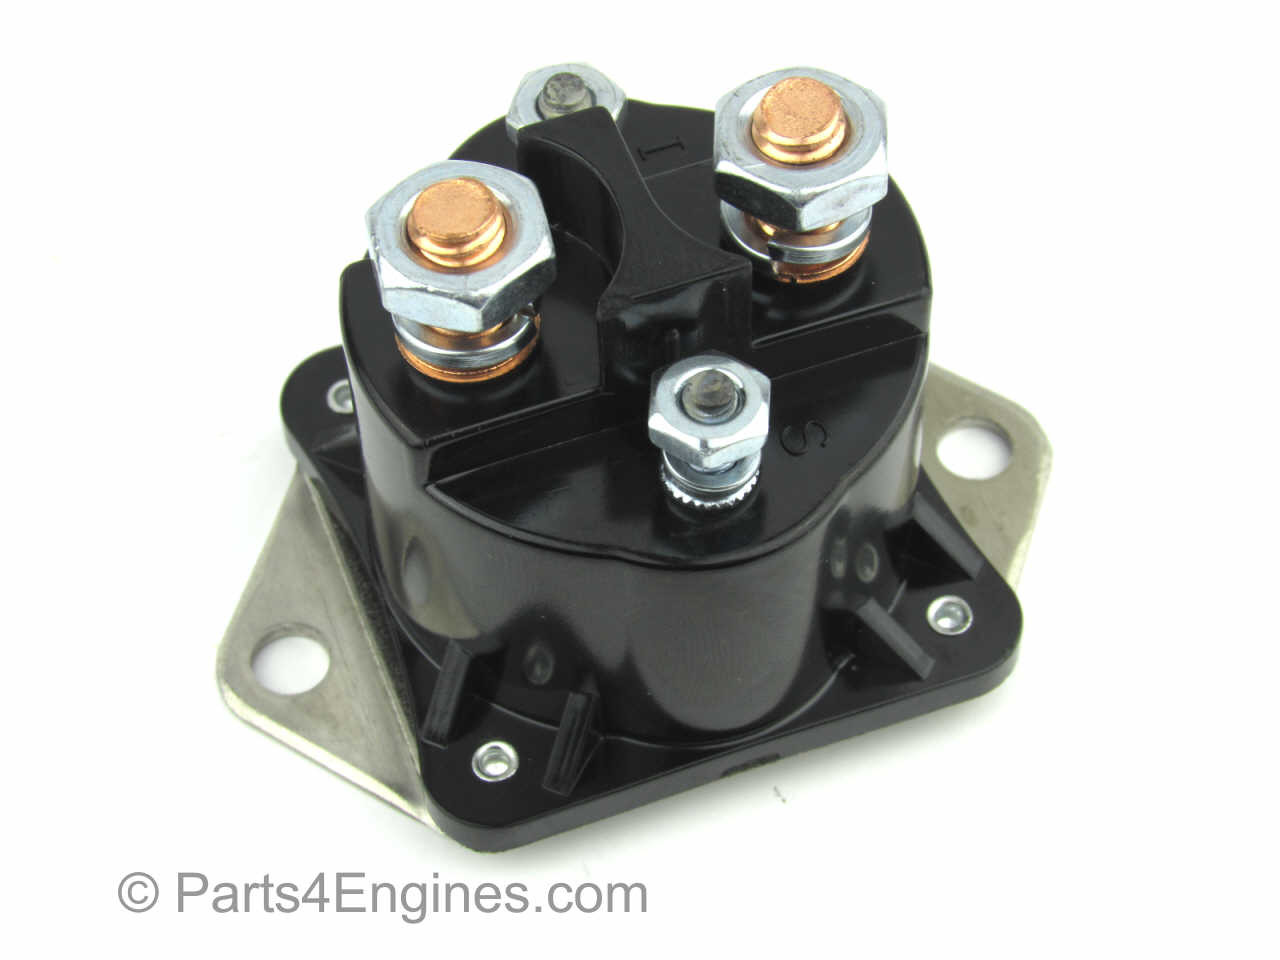 hight resolution of perkins 4 108 starter marine solenoid 100 amp from parts4engines com